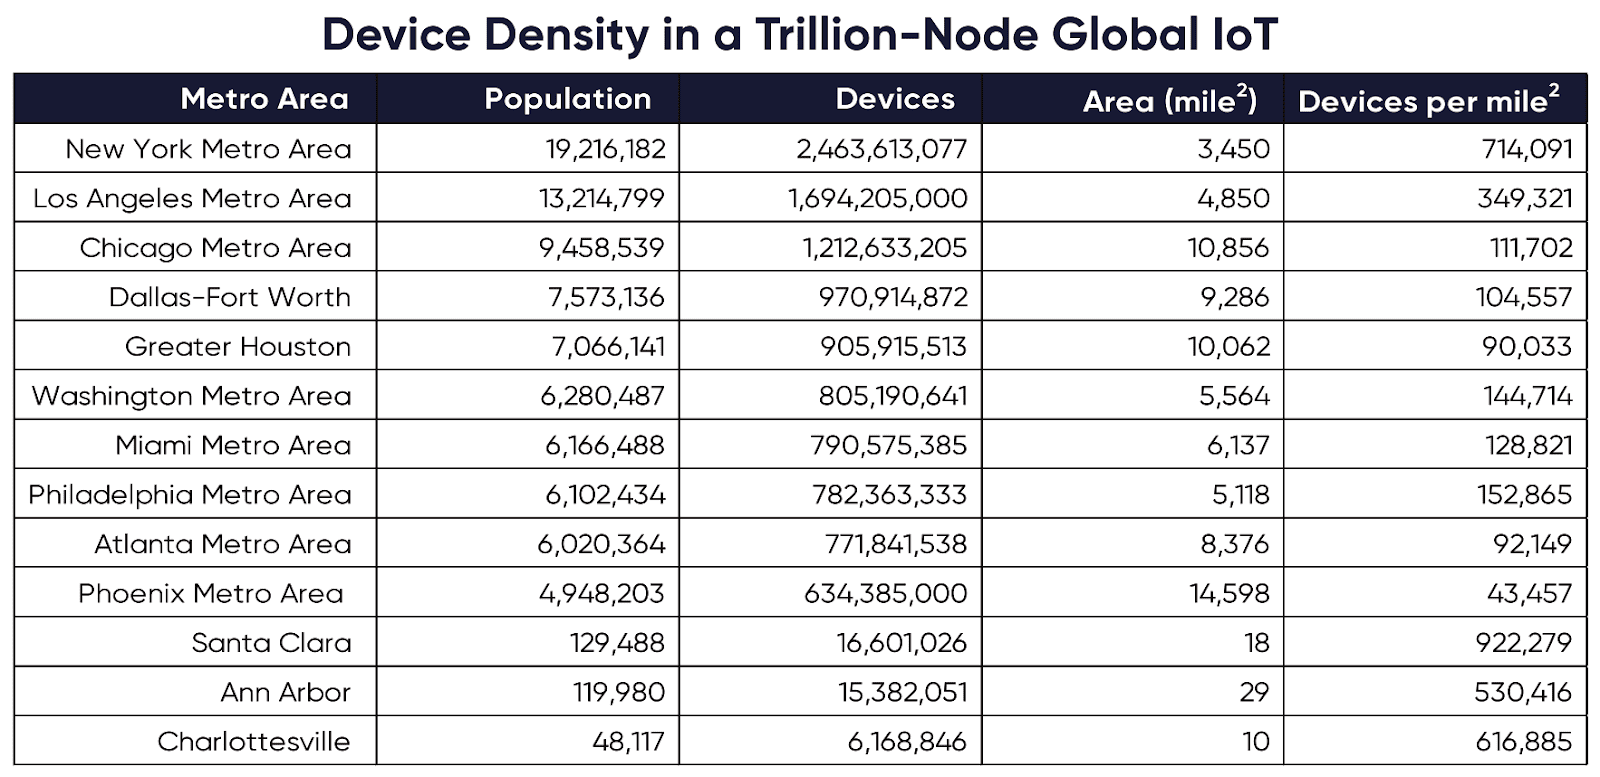 Table showing device density by metro area in a trillion note internet of things